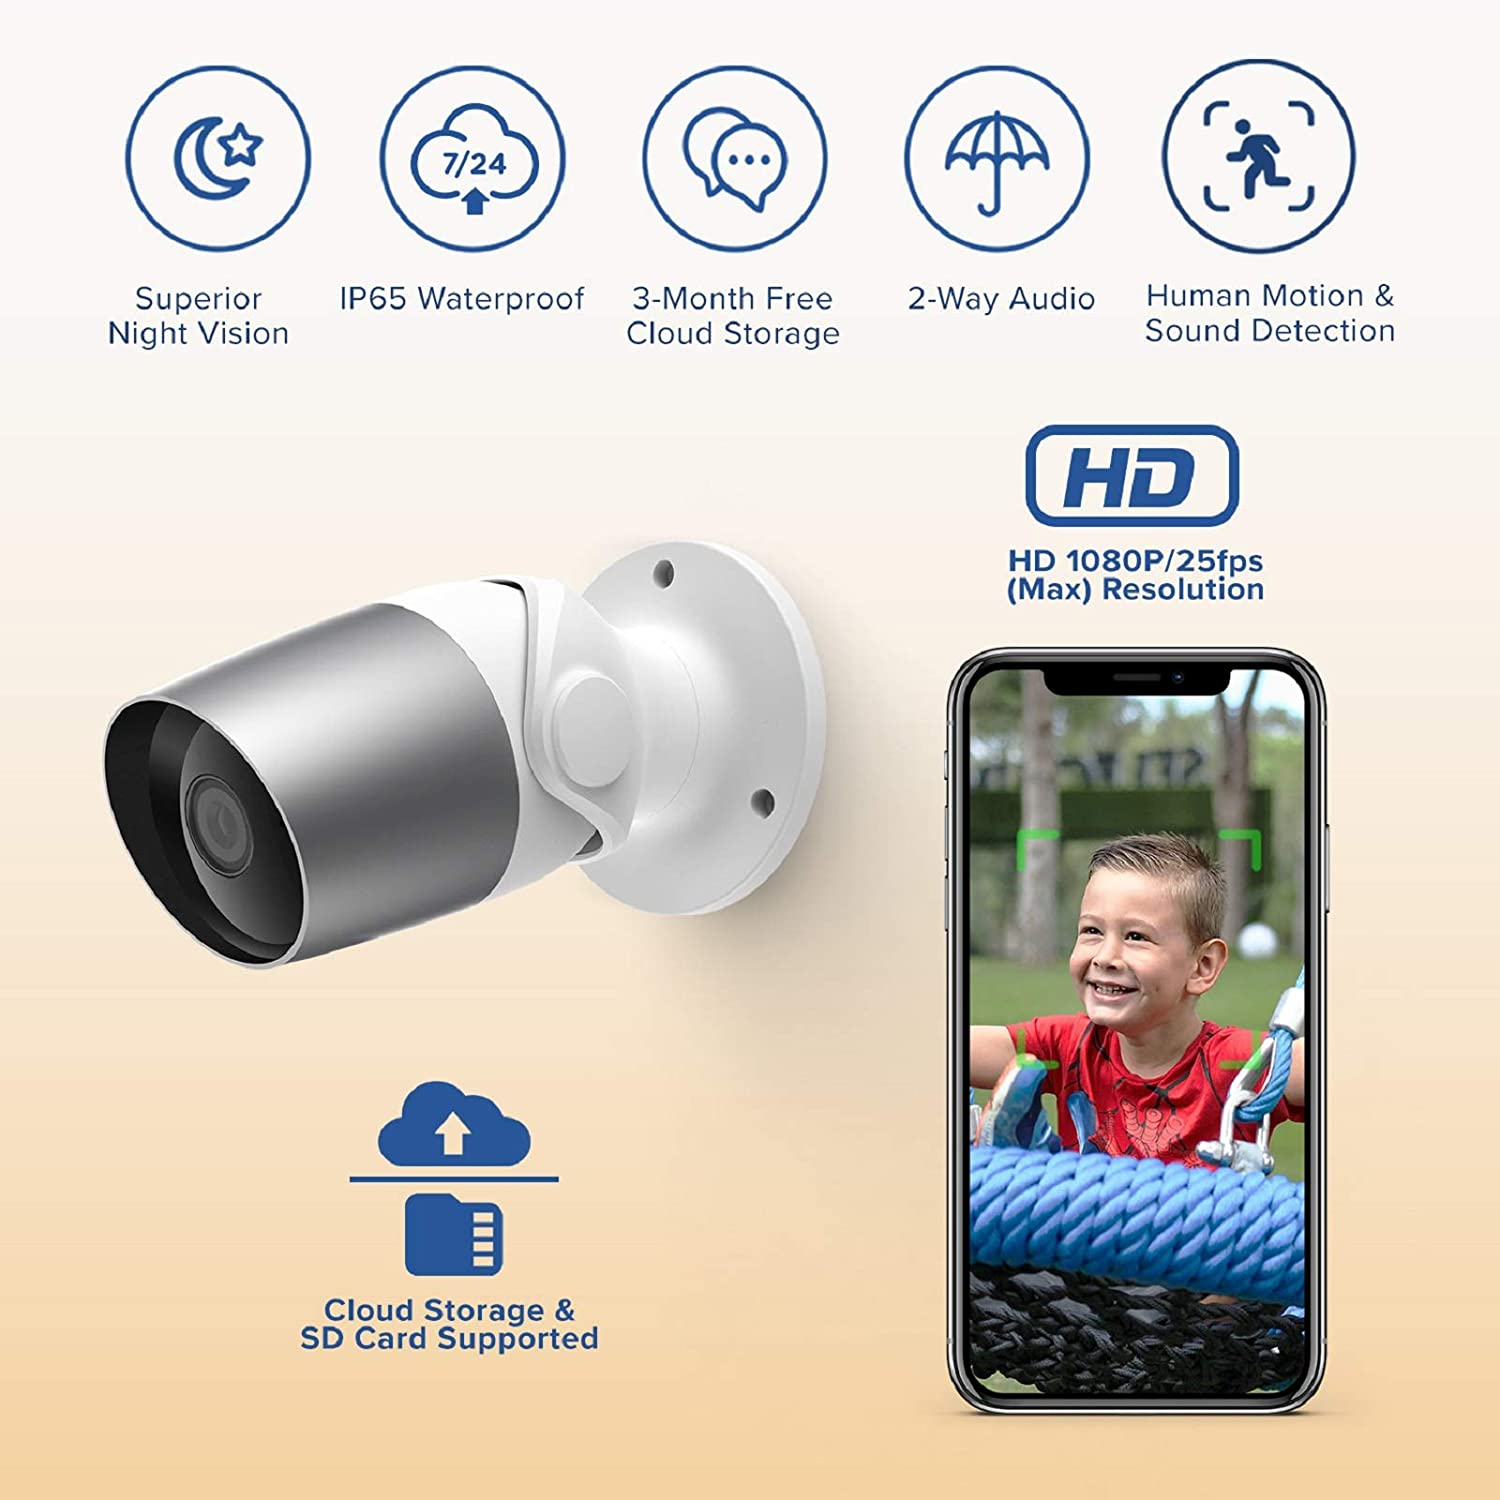 Night Vision /& Water Proof Outdoor Security Camera 1080p WiFi Surveillance System With 32G SD Card Human /& Motion Detection Compatible with Alexa Laxihub O1 Wireless Home Camera